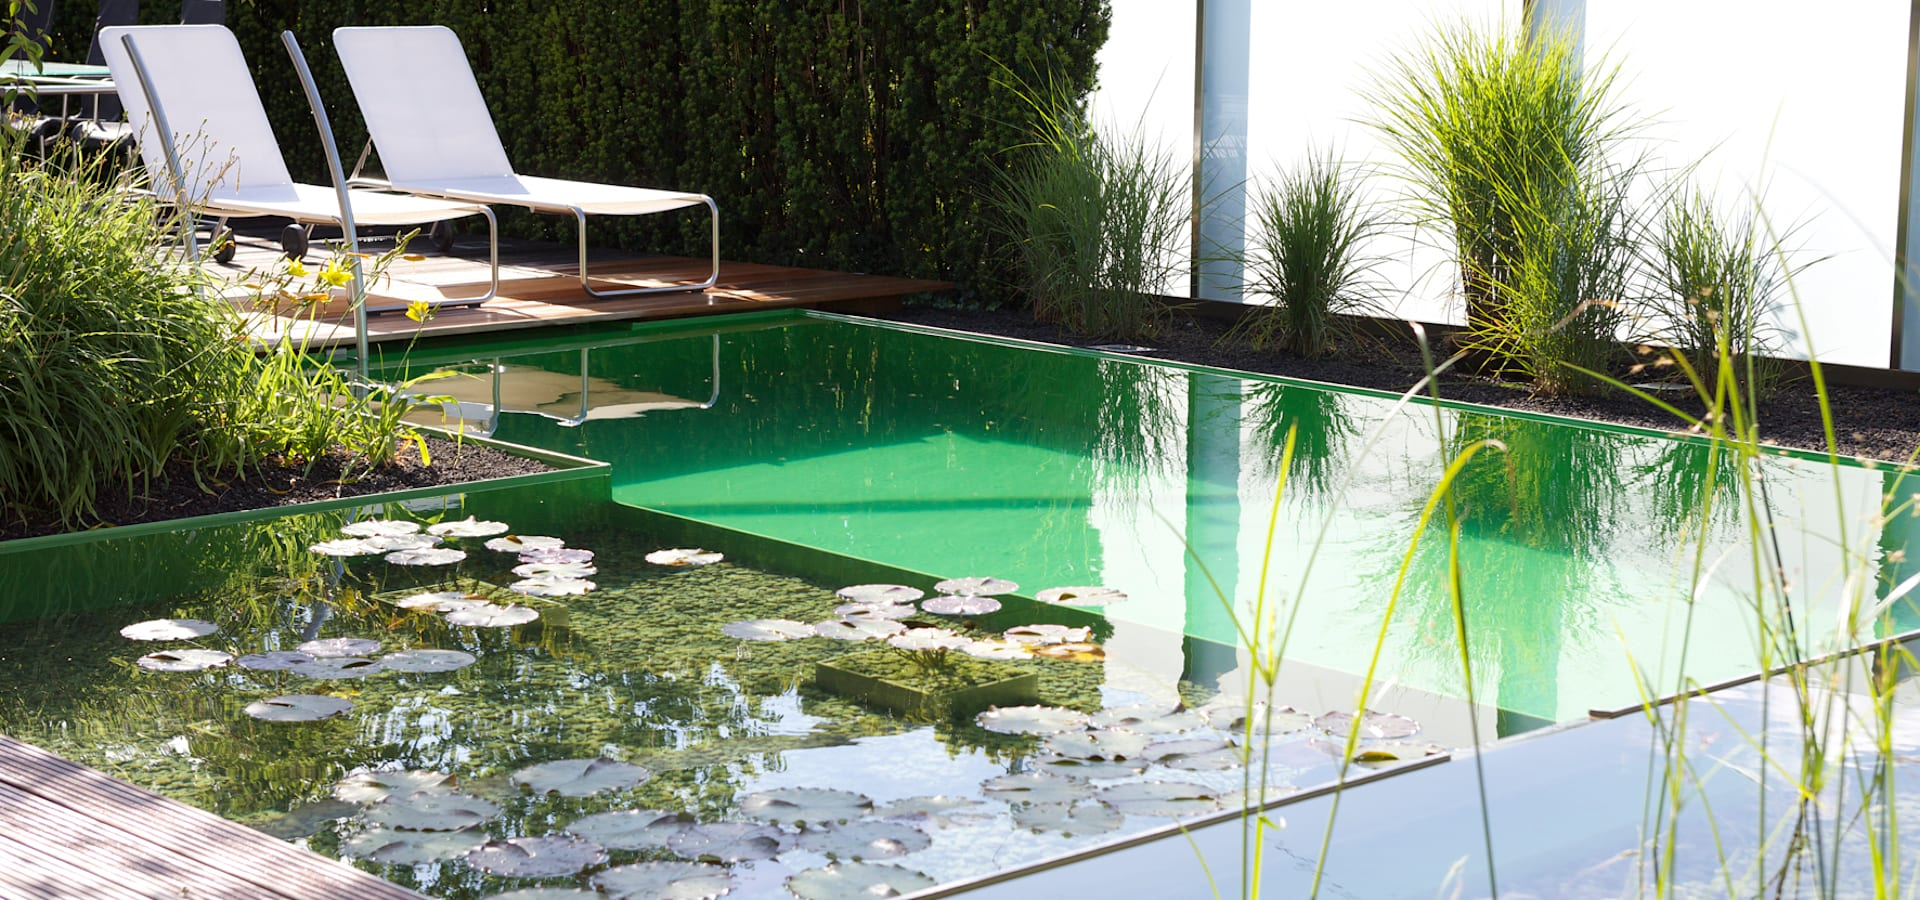 Teichmeister Balena Pools By Balena Gmbh Homify